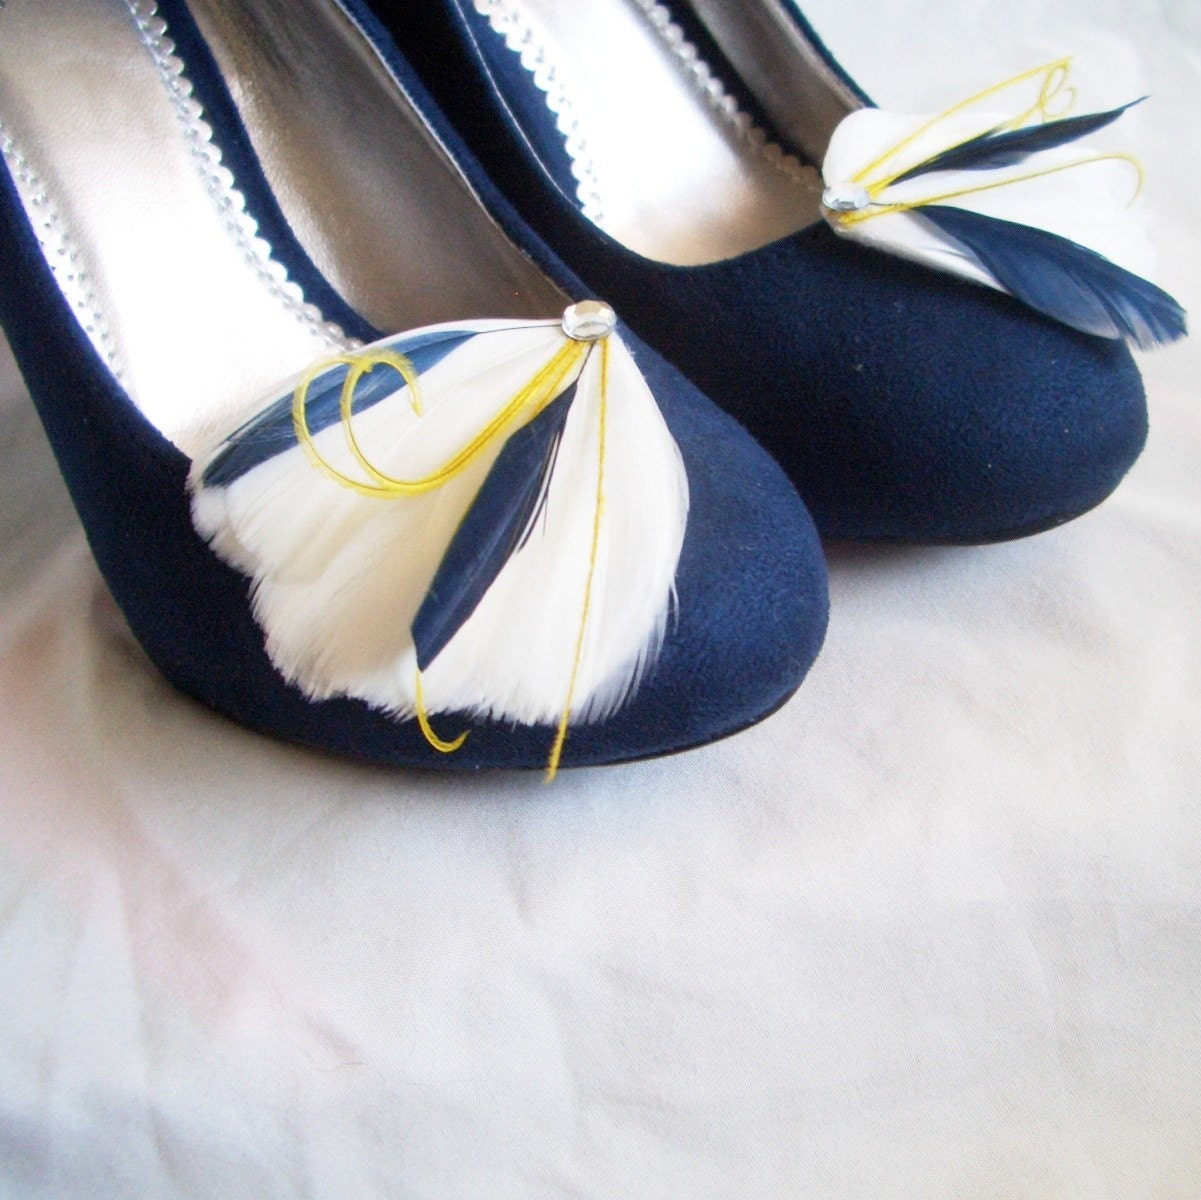 MILA SHOE CLIPS - 1 Pair of  Ivory Navy and Yellow Feather Shoe Clips - TheHeadbandShoppe